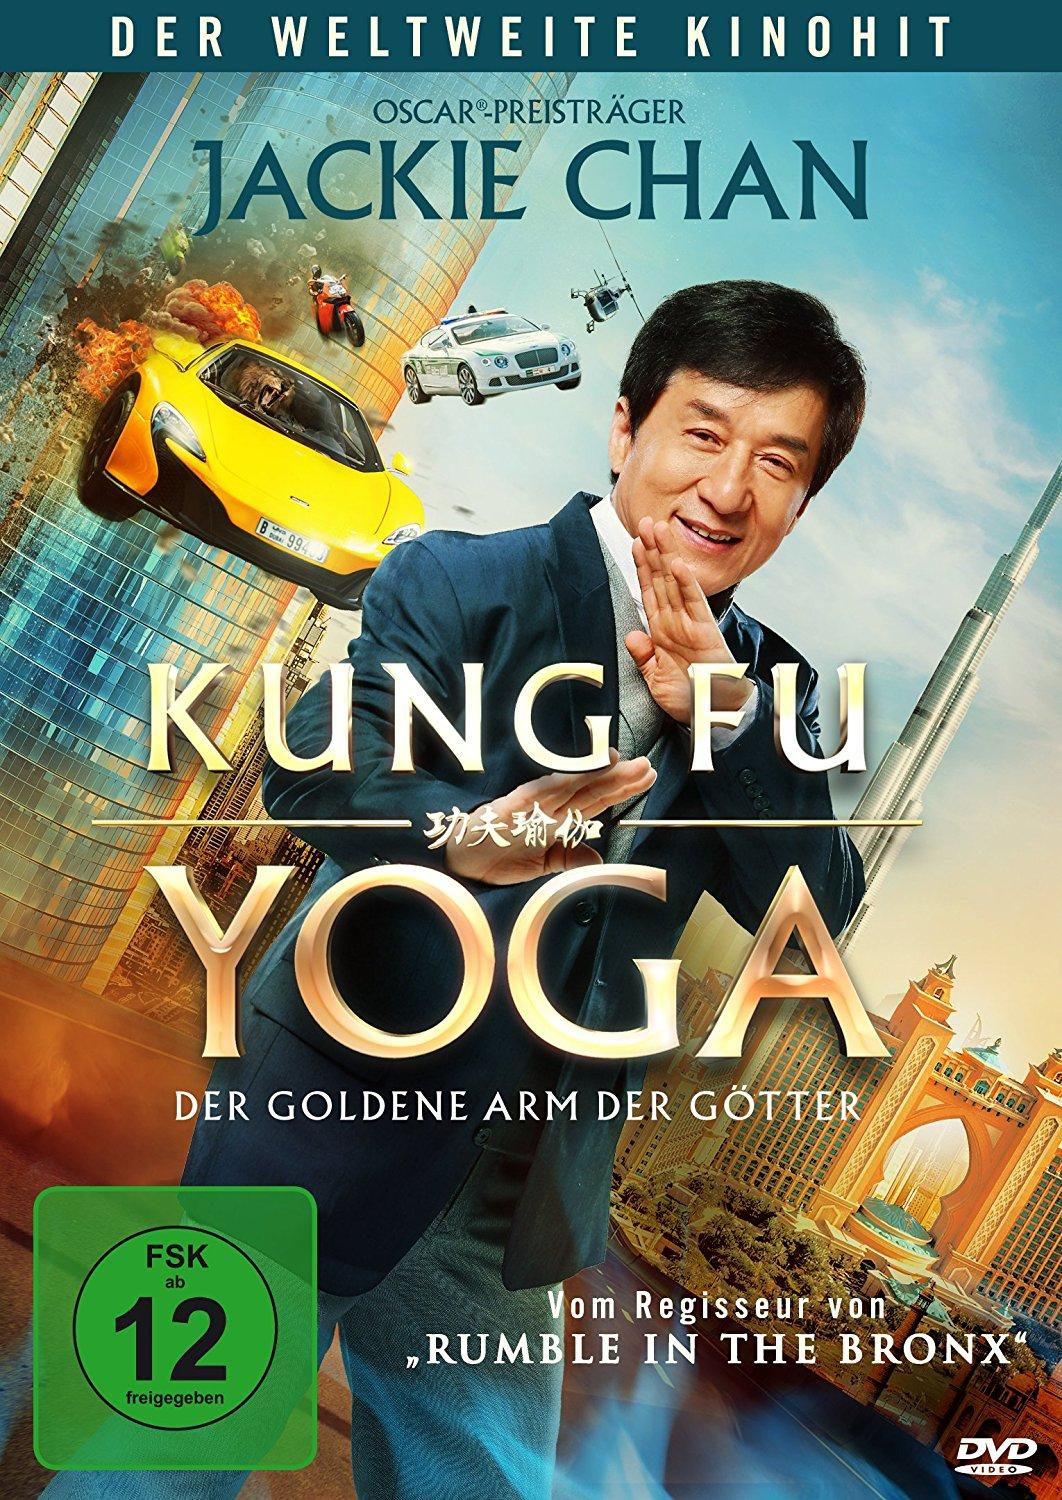 Kung.Fu.Yoga.Der.goldene.Arm.der.Goetter.2017.German.1080p.BluRay.x264-ENCOUNTERS